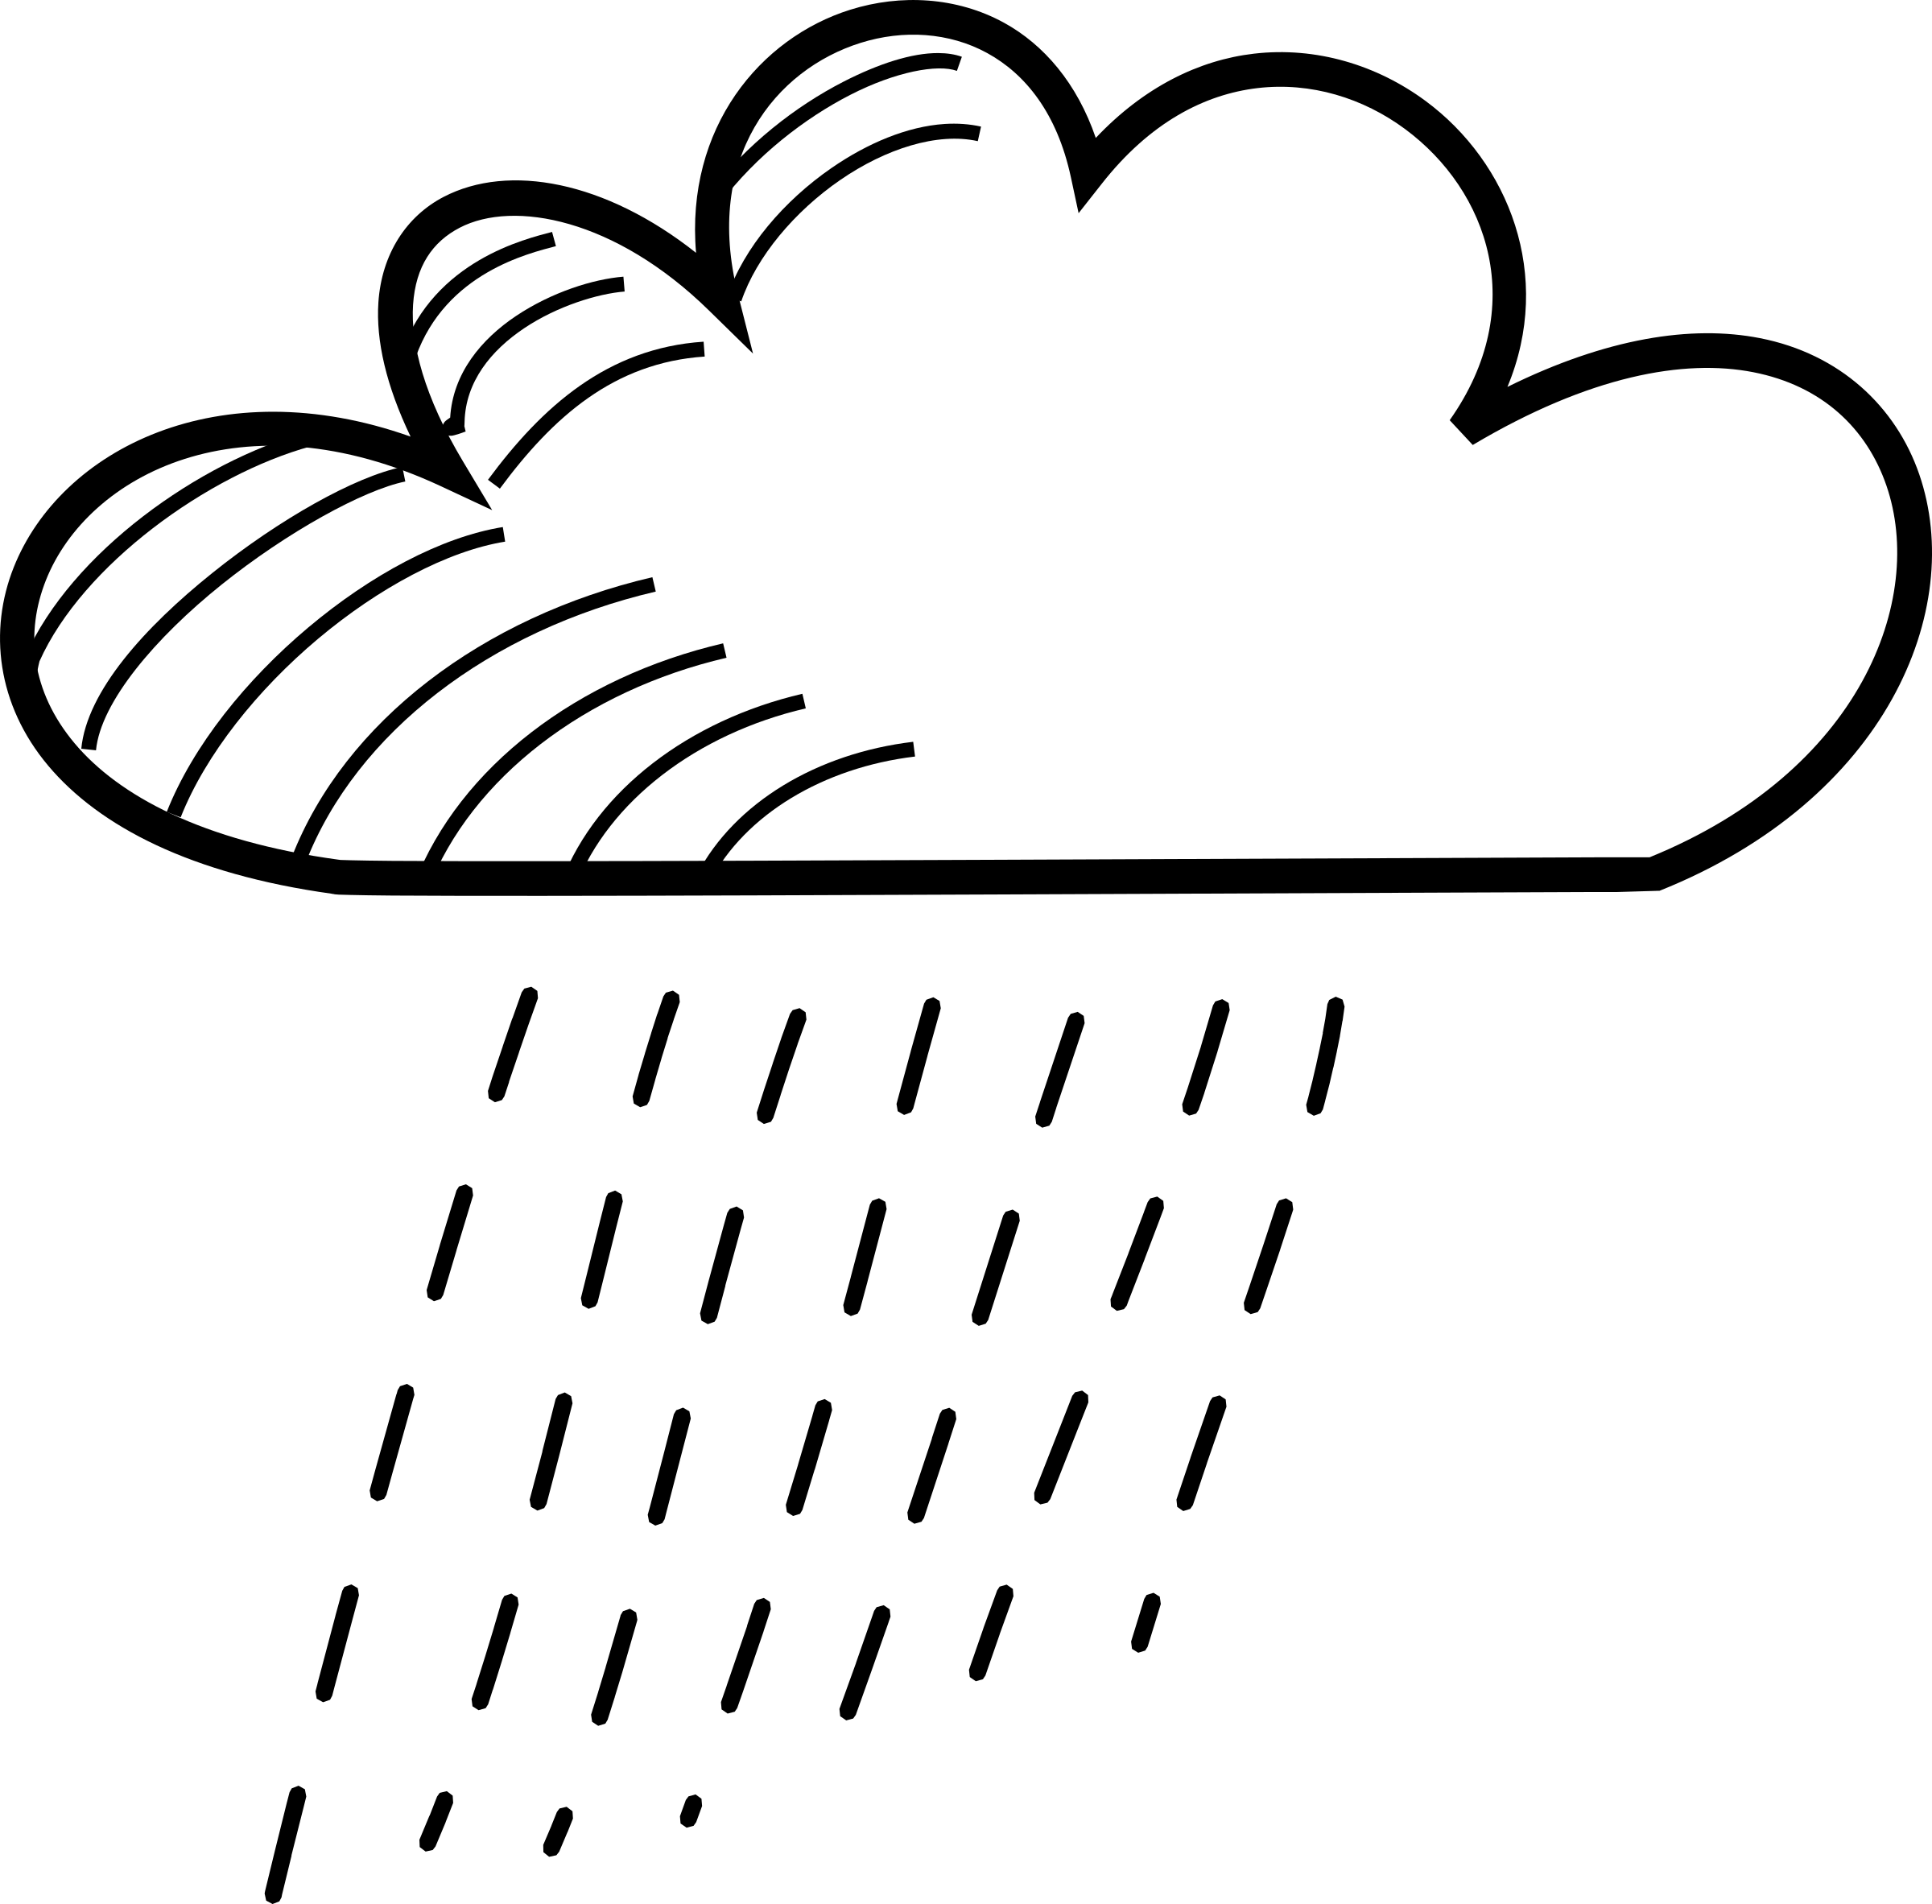 Vector sketching cloud. Rainy stick figure icons